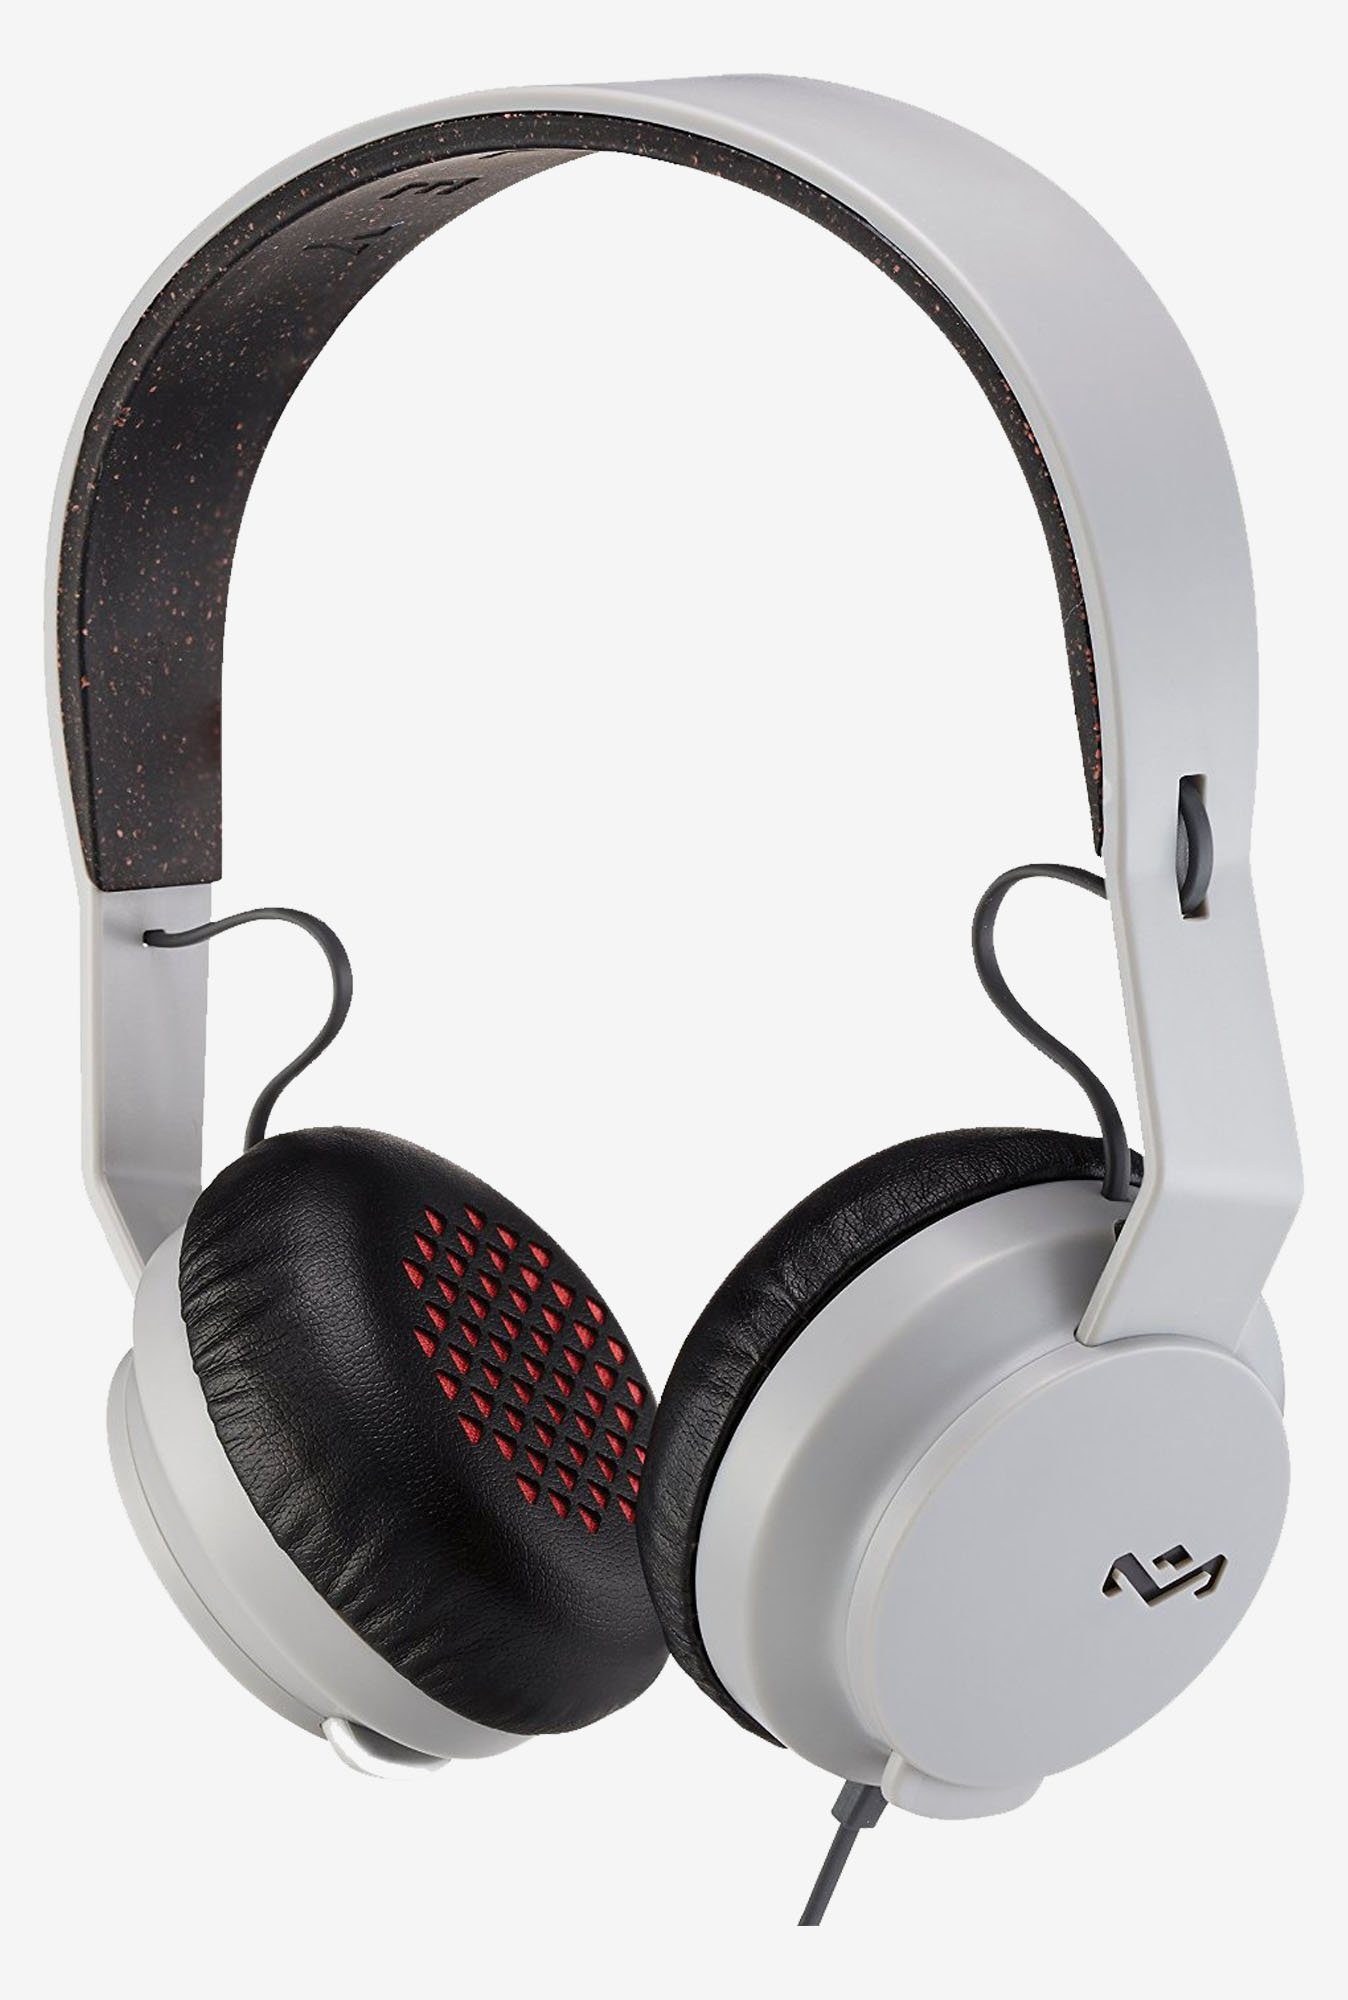 House of Marley EM-JH081-GY Roar On the Ear Headphone (Grey)